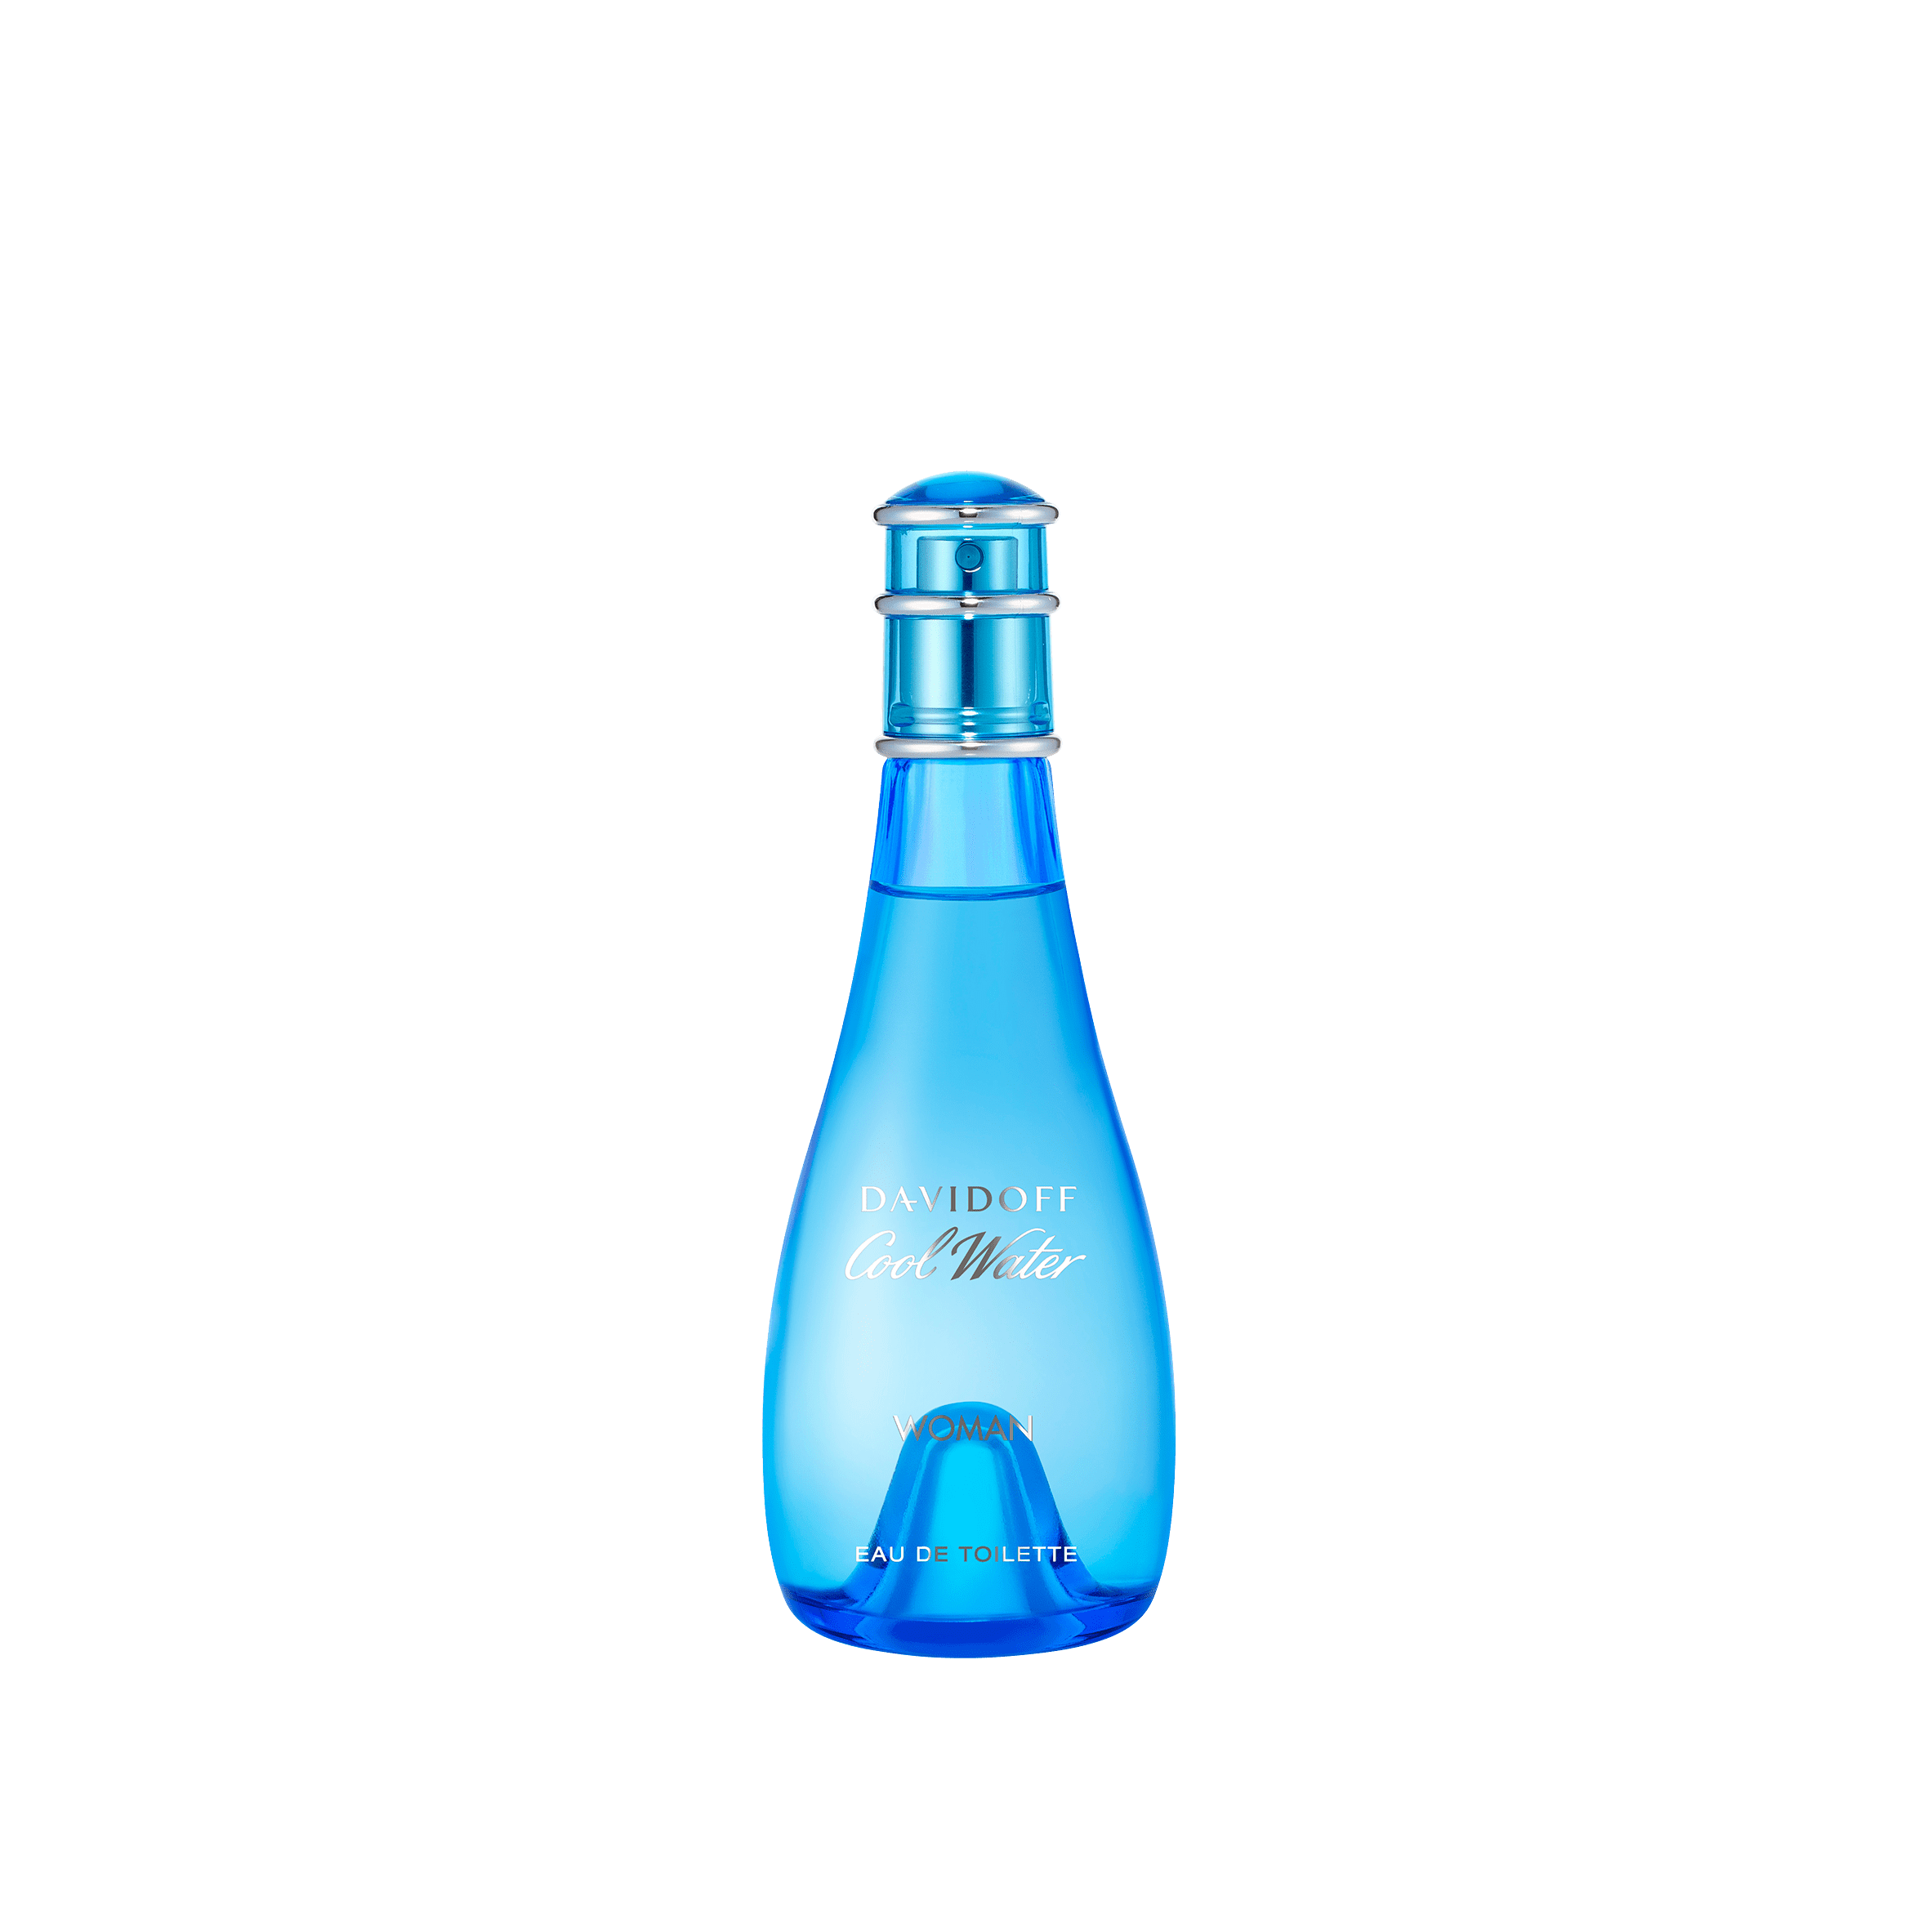 Cool Water Woman Eau De Toilette Davidoff